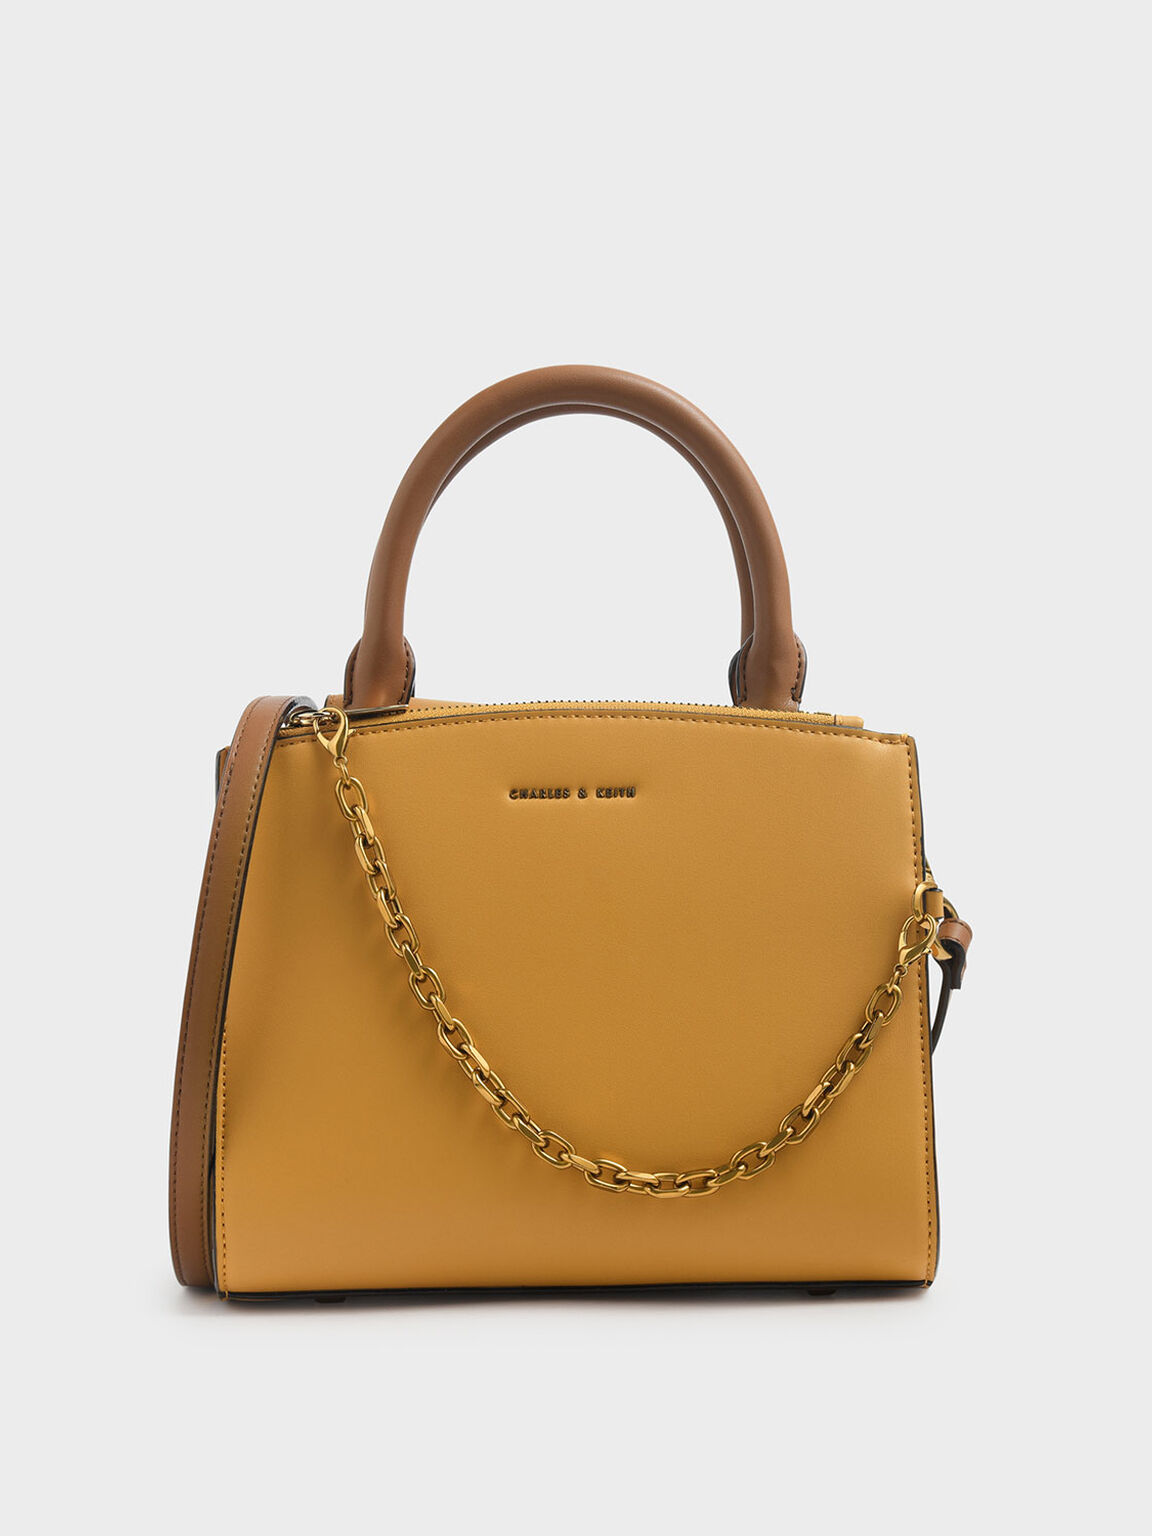 Chain Link Classic Handbag, Brown, hi-res